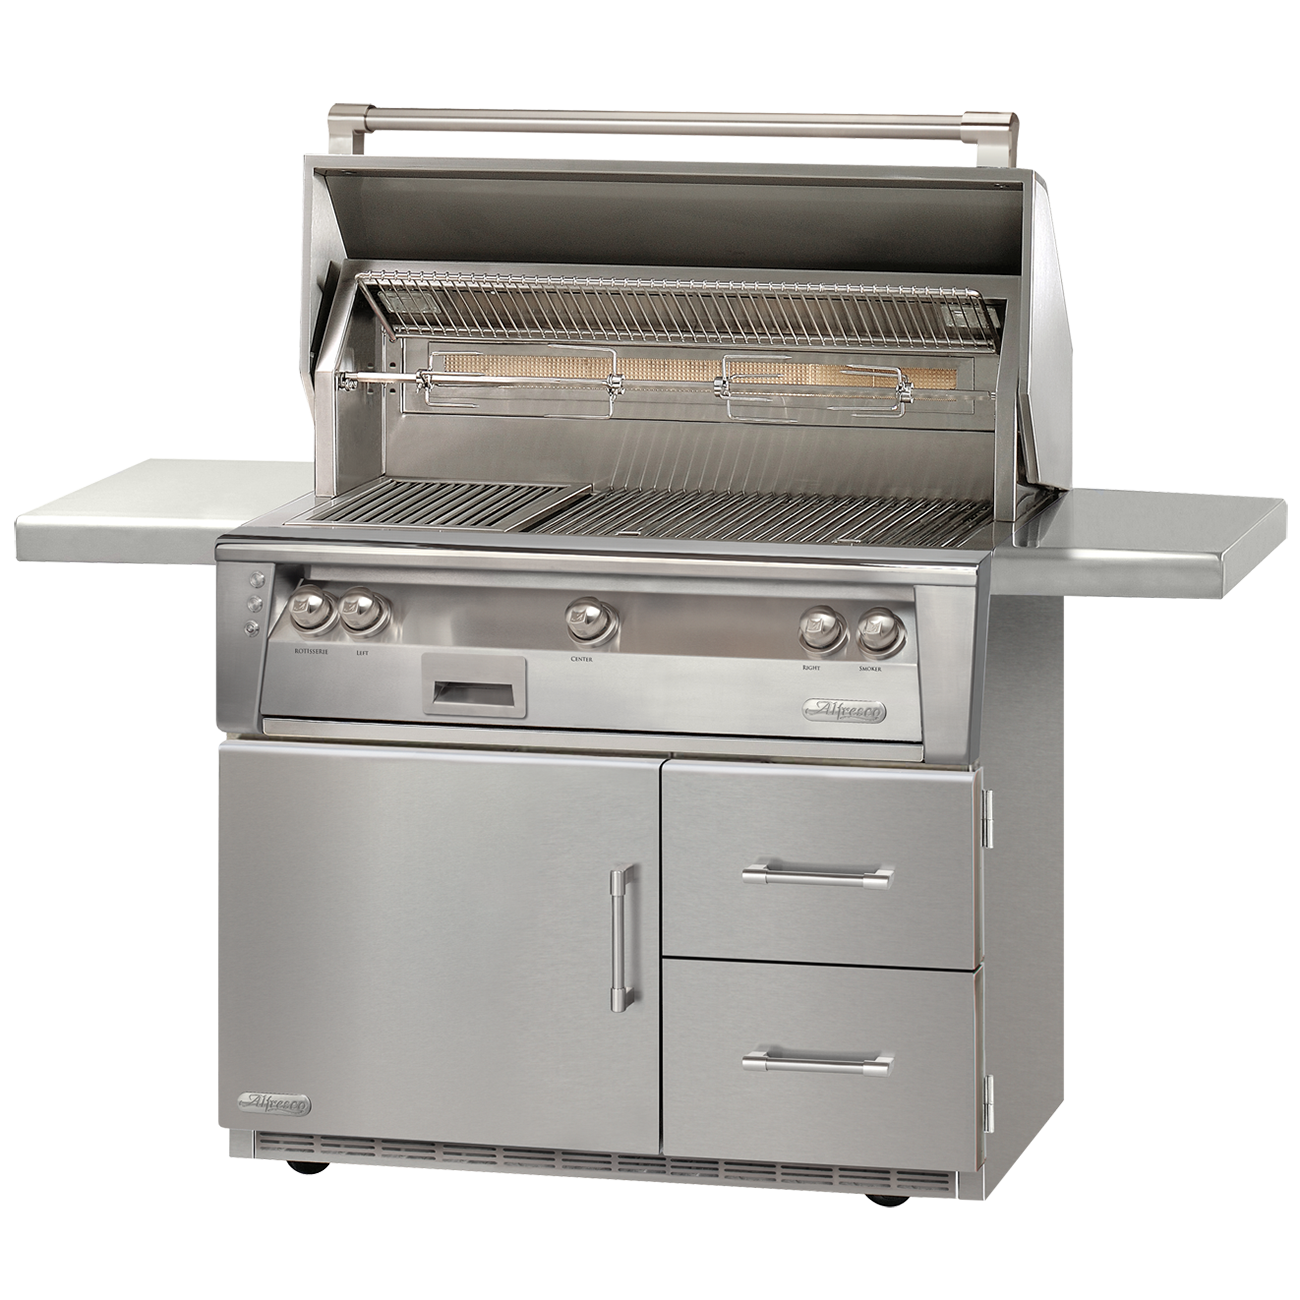 "42"" Alfresco ALXE Gas Grill w/ Rotisserie On Refrigerated Cart, Natural Gas"